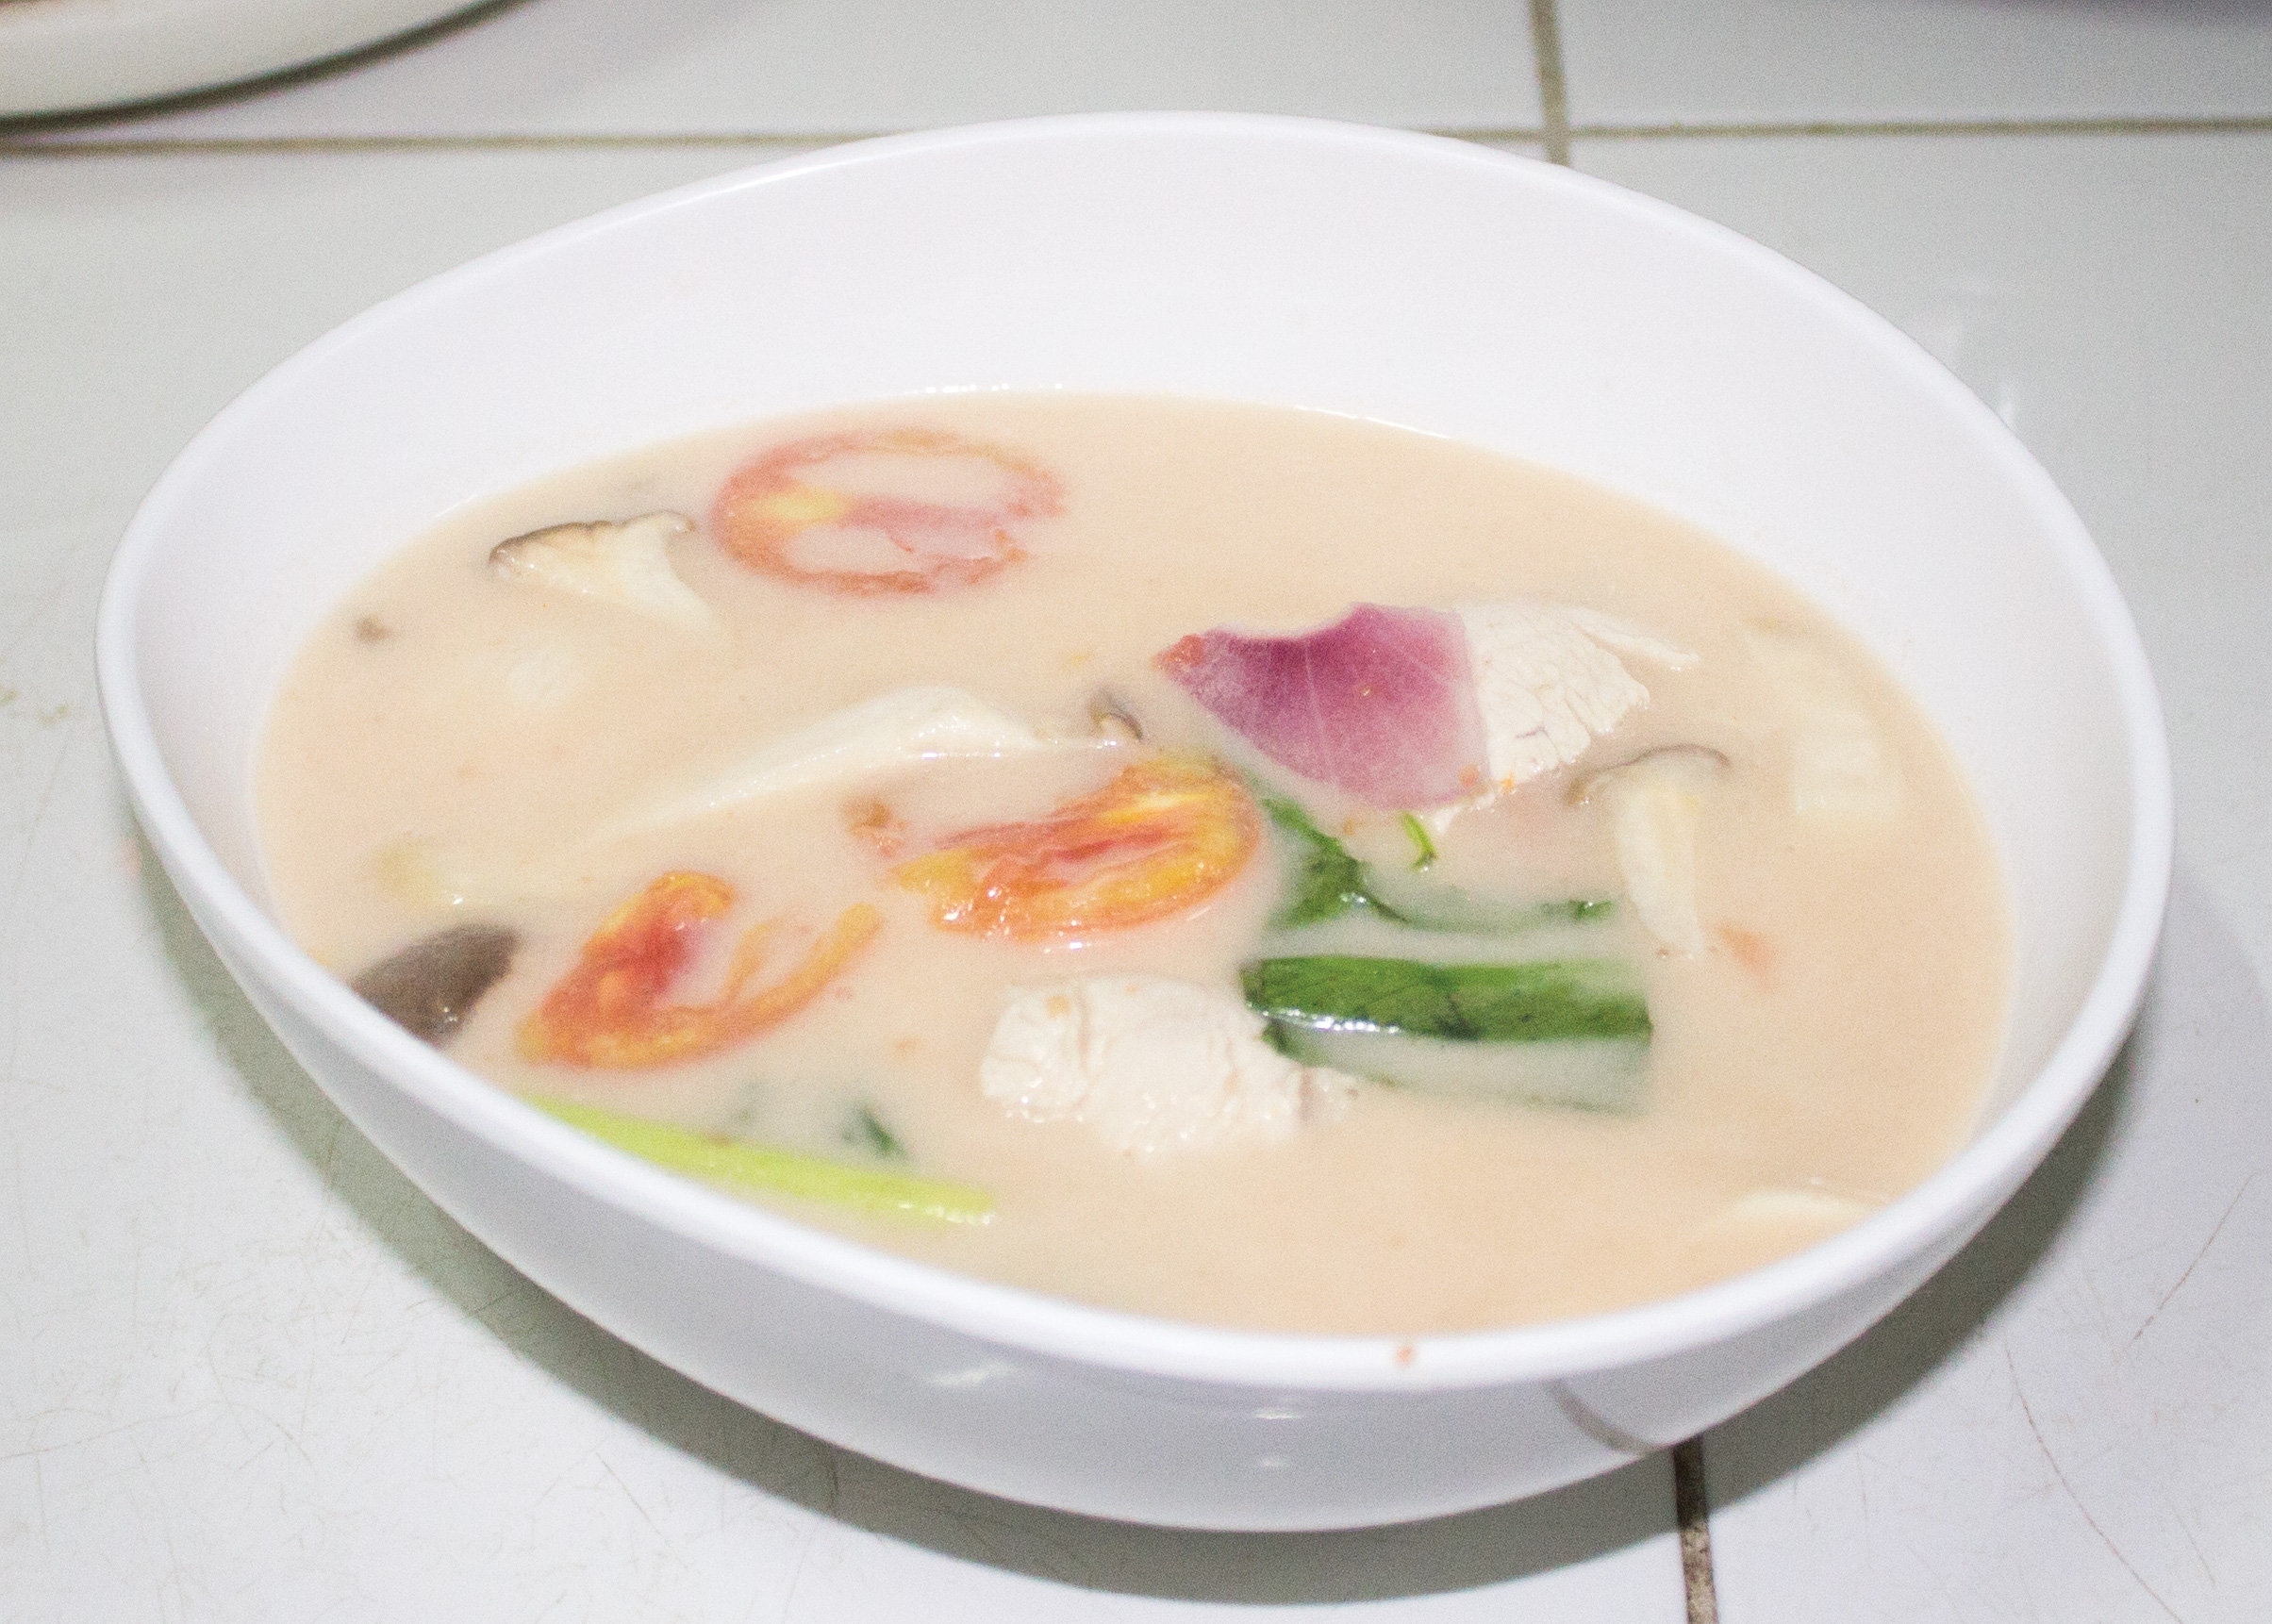 Tom Kha Gai with steam rice